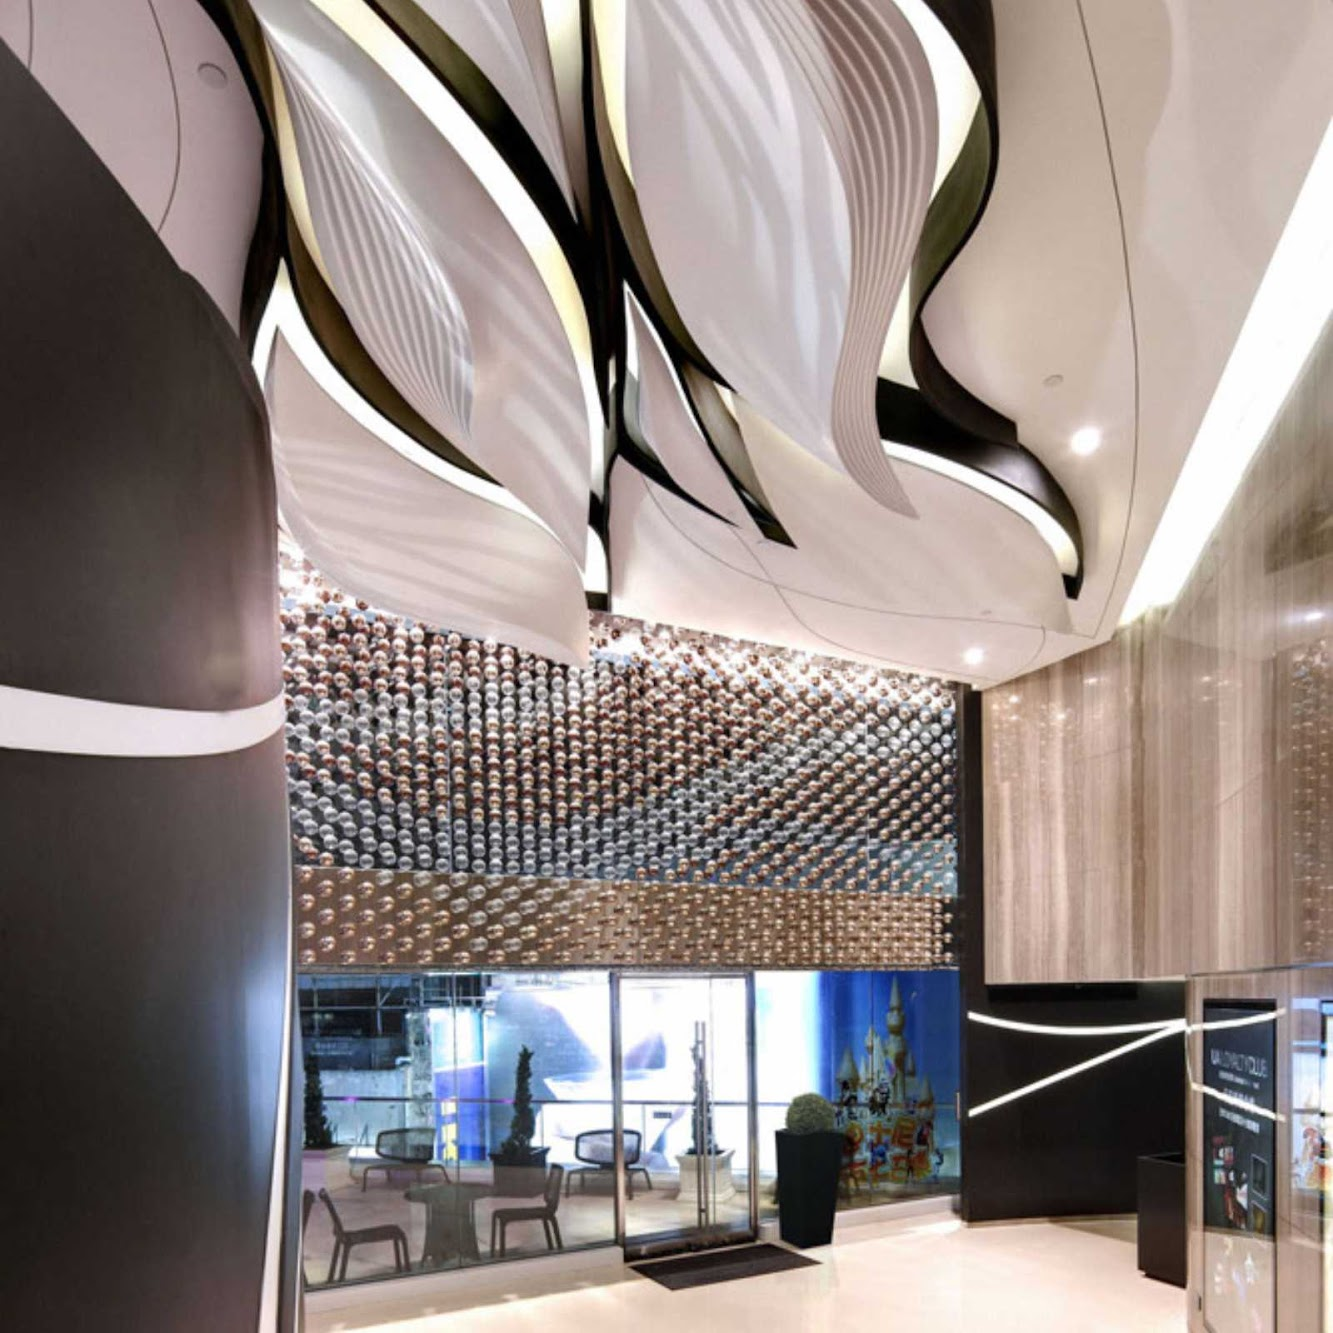 Causeway Bay, Hong Kong: Boutique Cinema @ Windsor by Agc Design